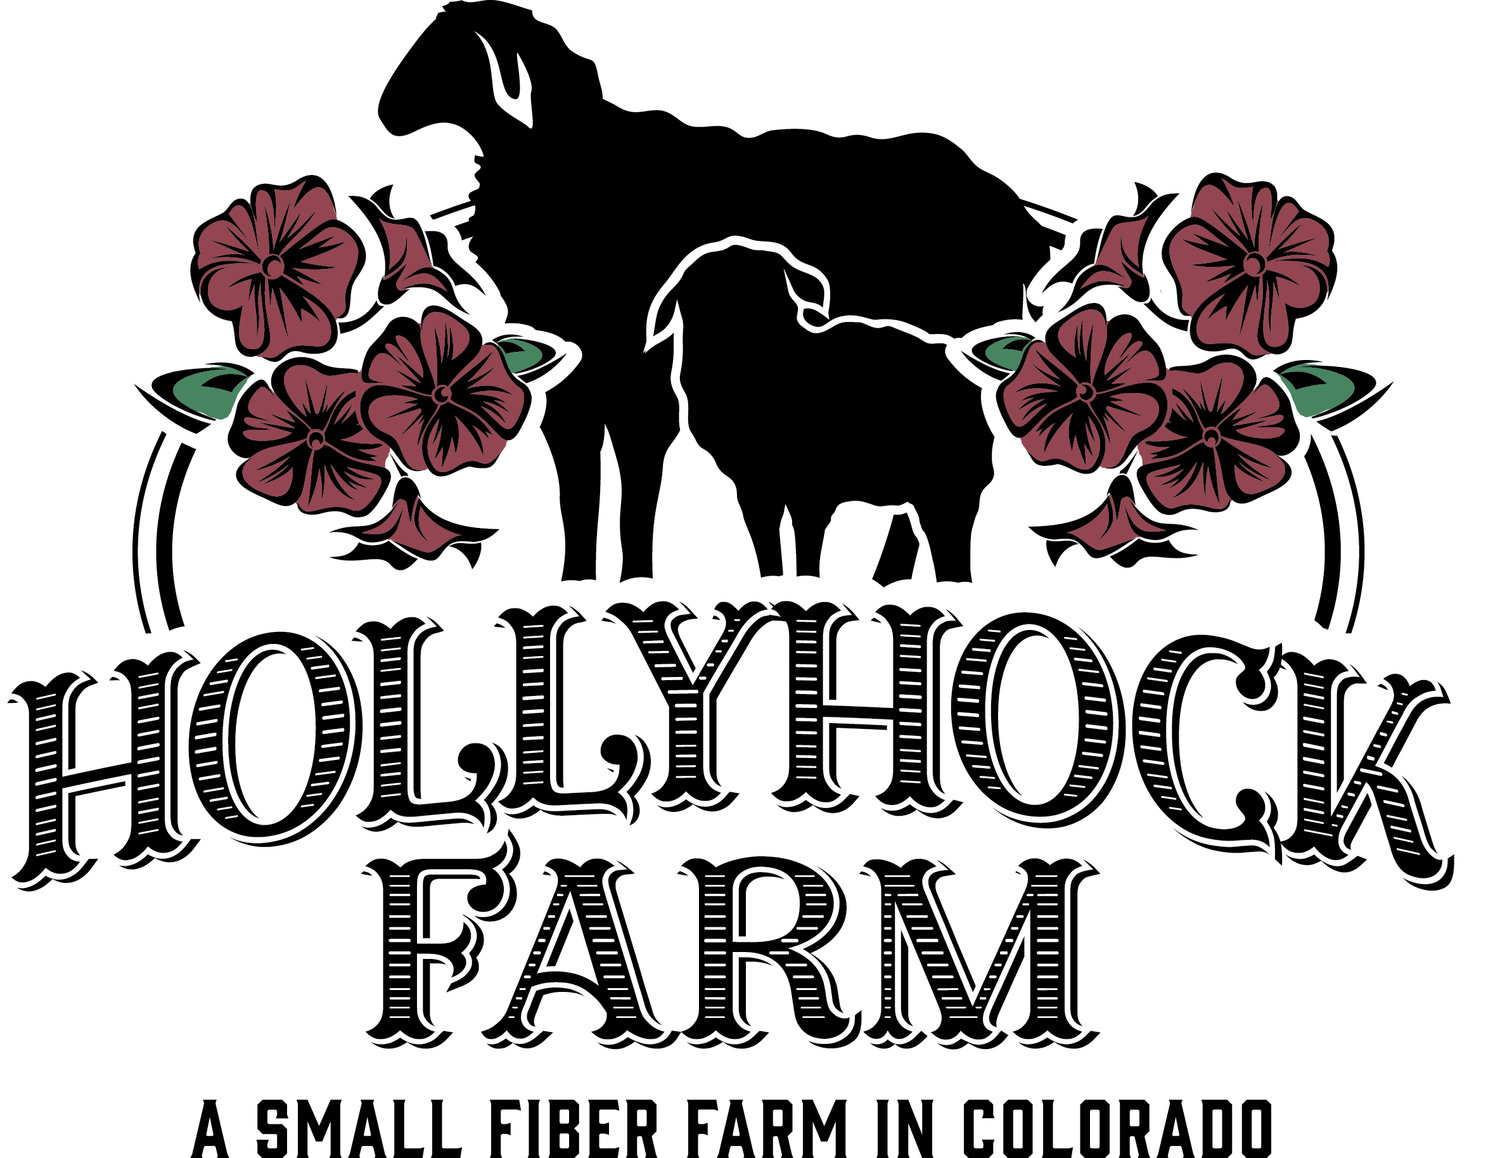 Hollyhock Farm